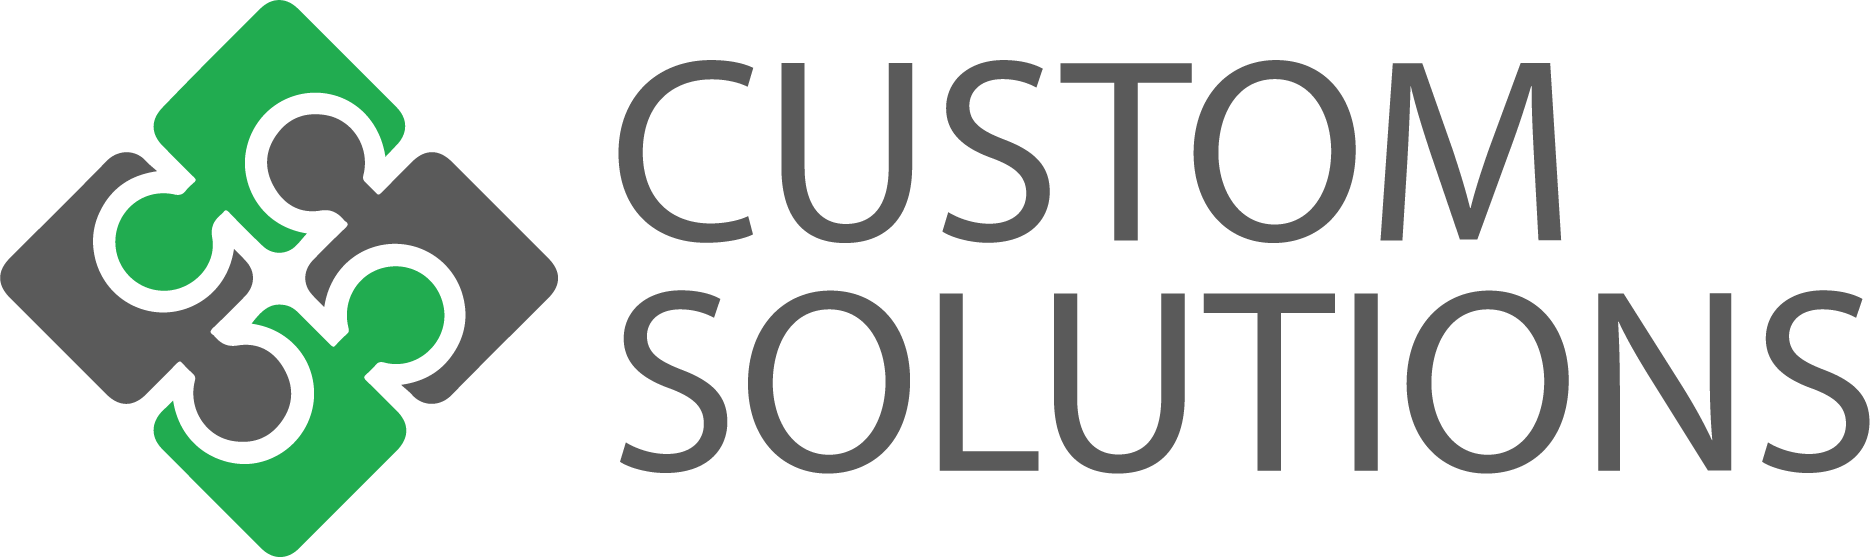 CustomSolutions_logo.png